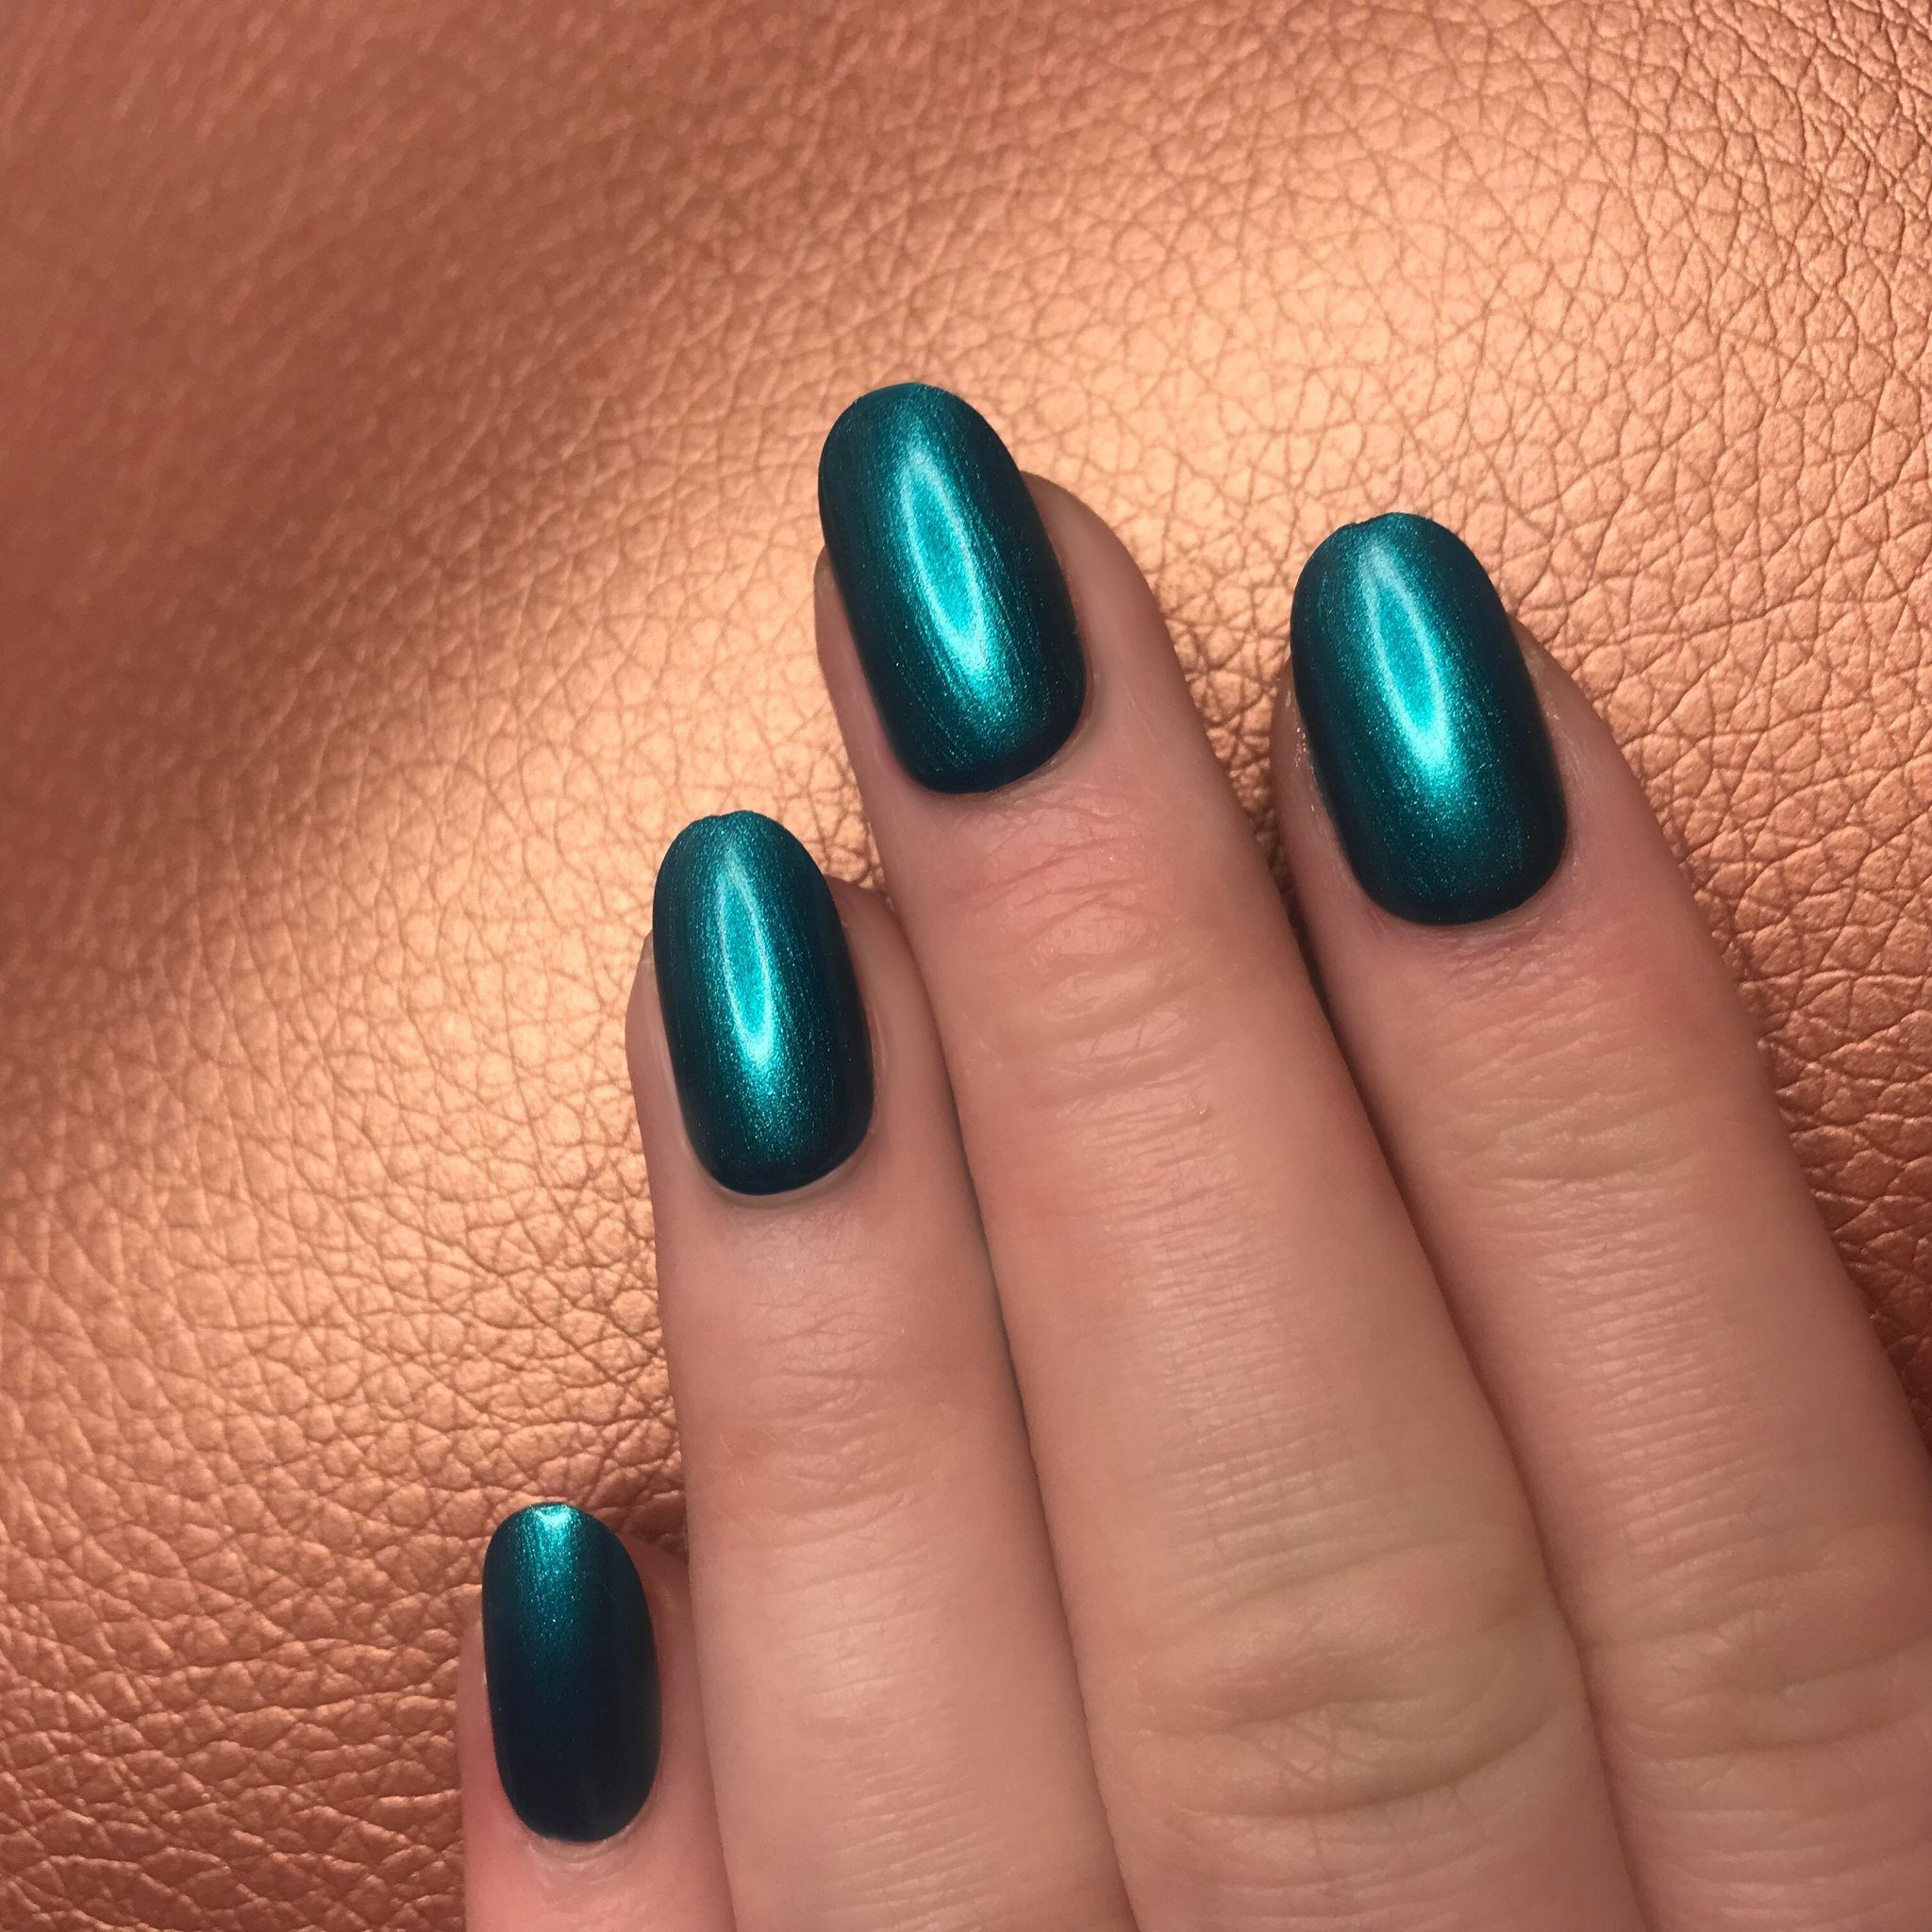 teal-nail-polish-pretty-little-nails-inner-mermaid